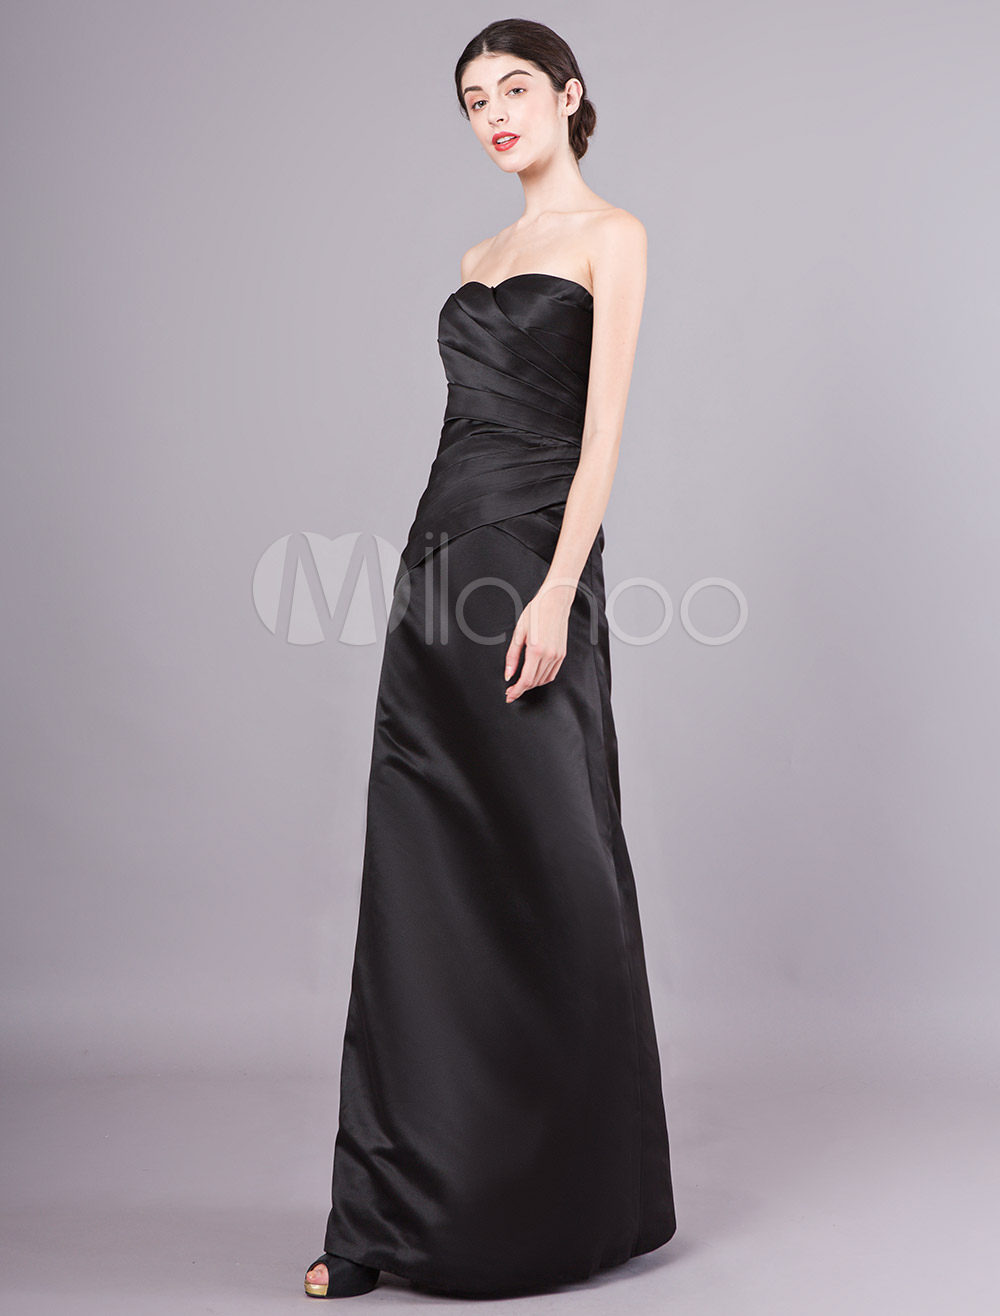 bae862e9dc5 Black Strapless Prom Dresses - Data Dynamic AG